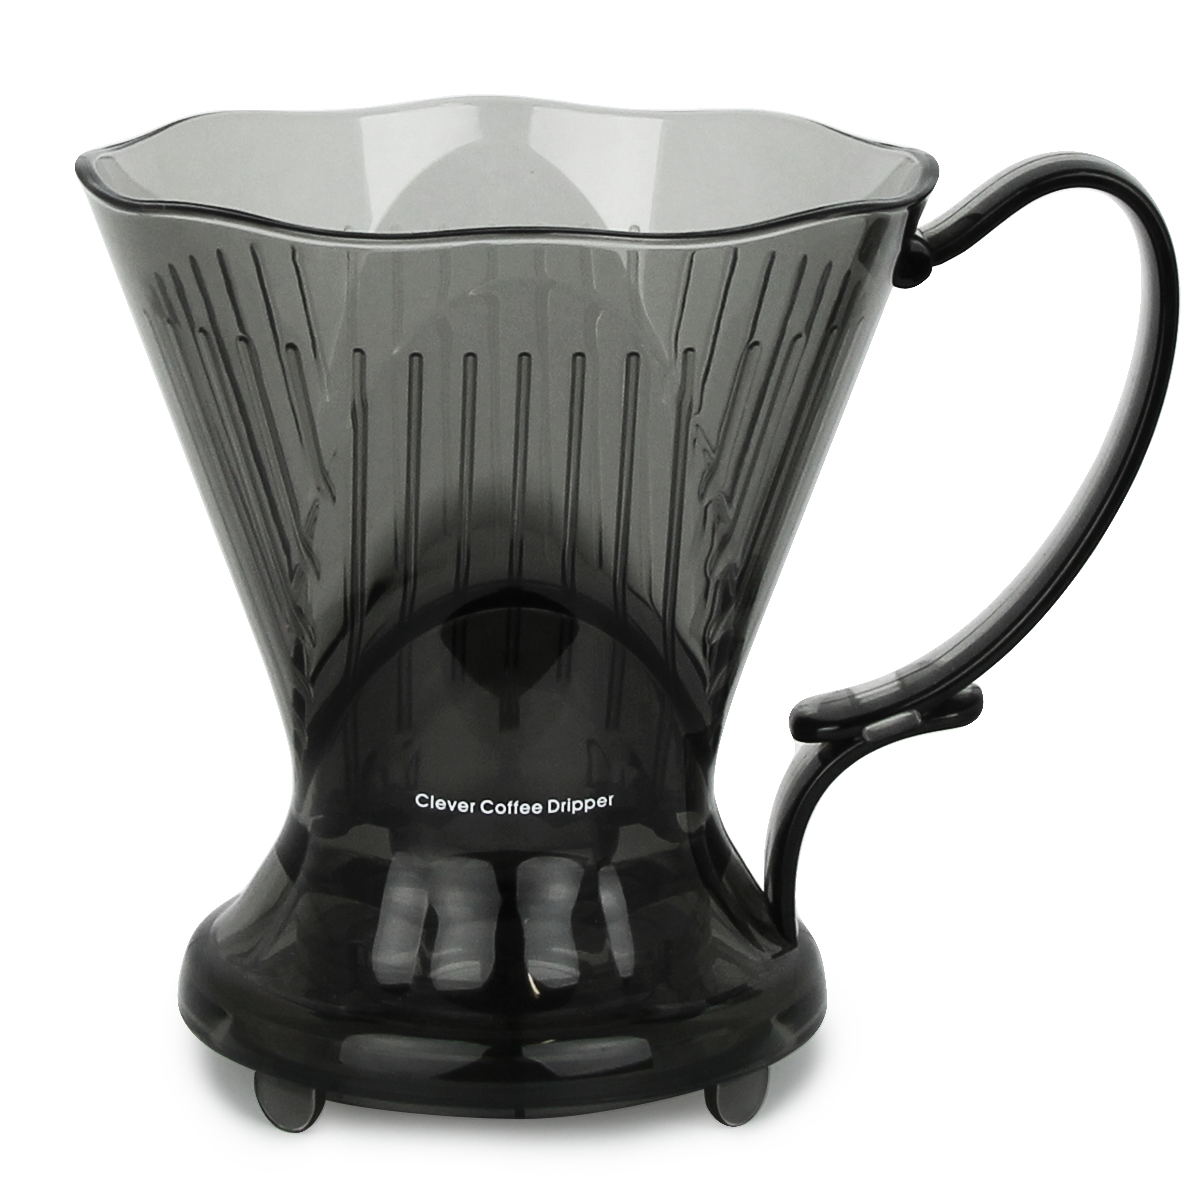 A product from Five Senses called Clever Coffee Dripper